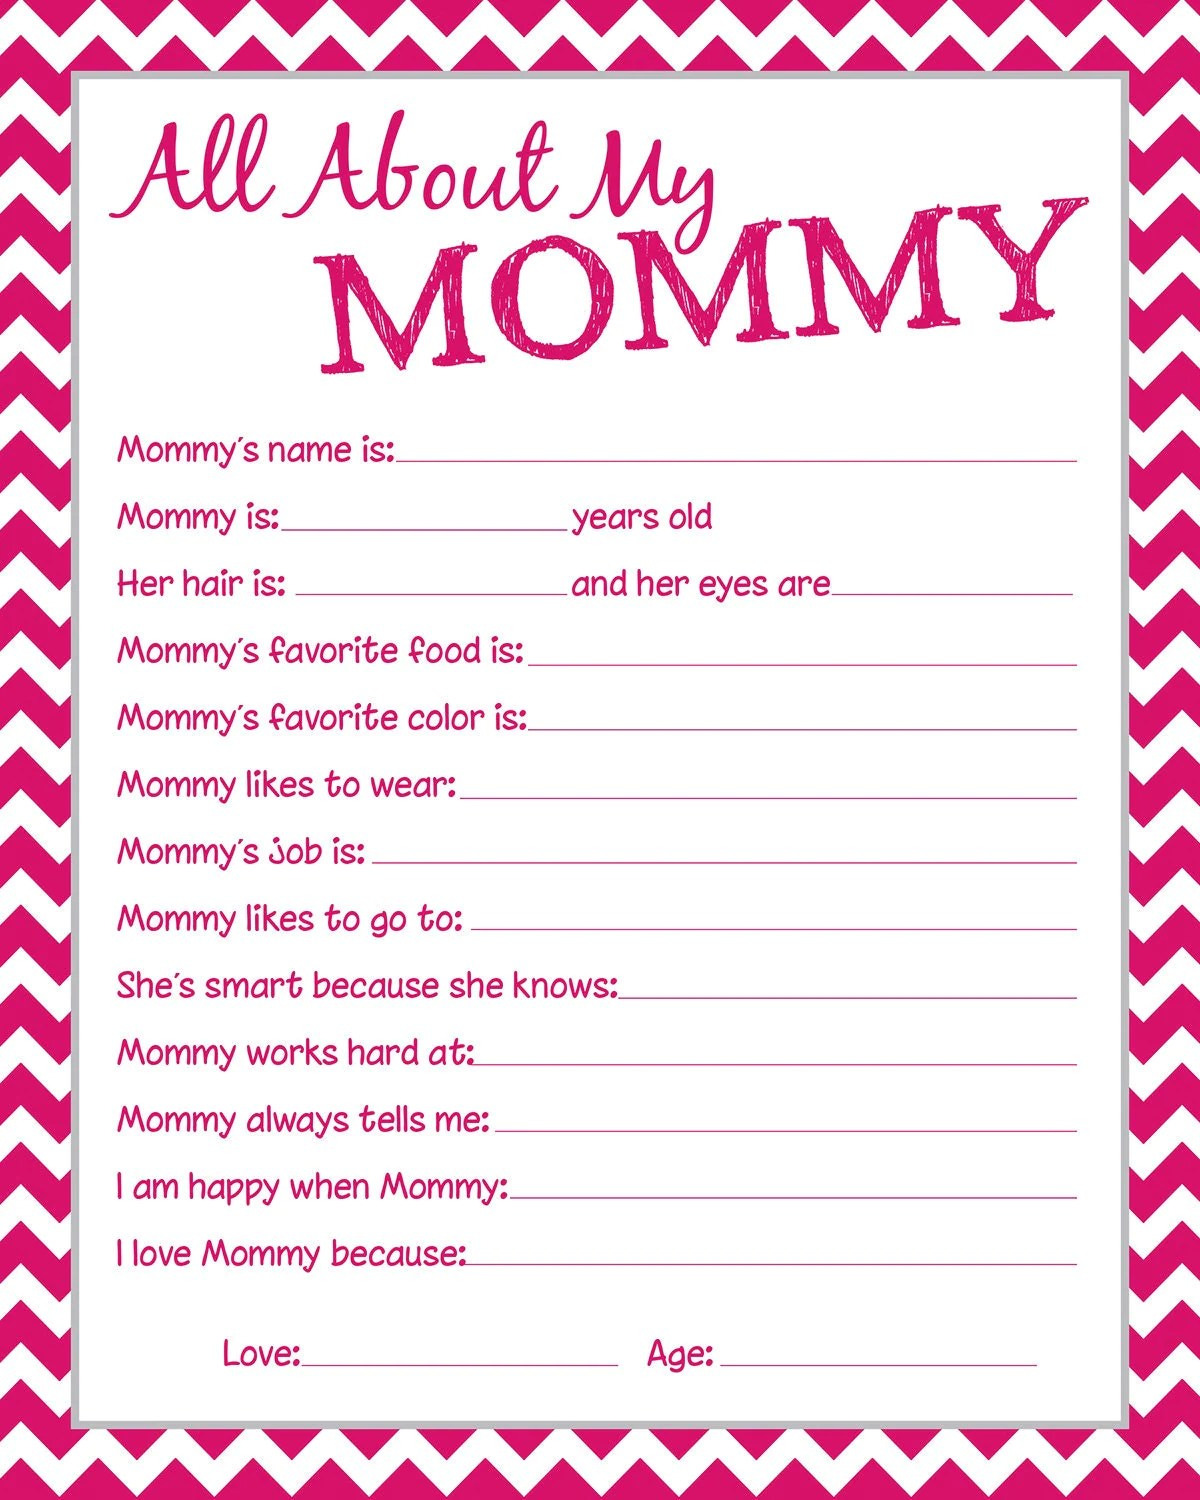 Mommy Questionnaire Perfect For Mother S Day By Kinneydesigns